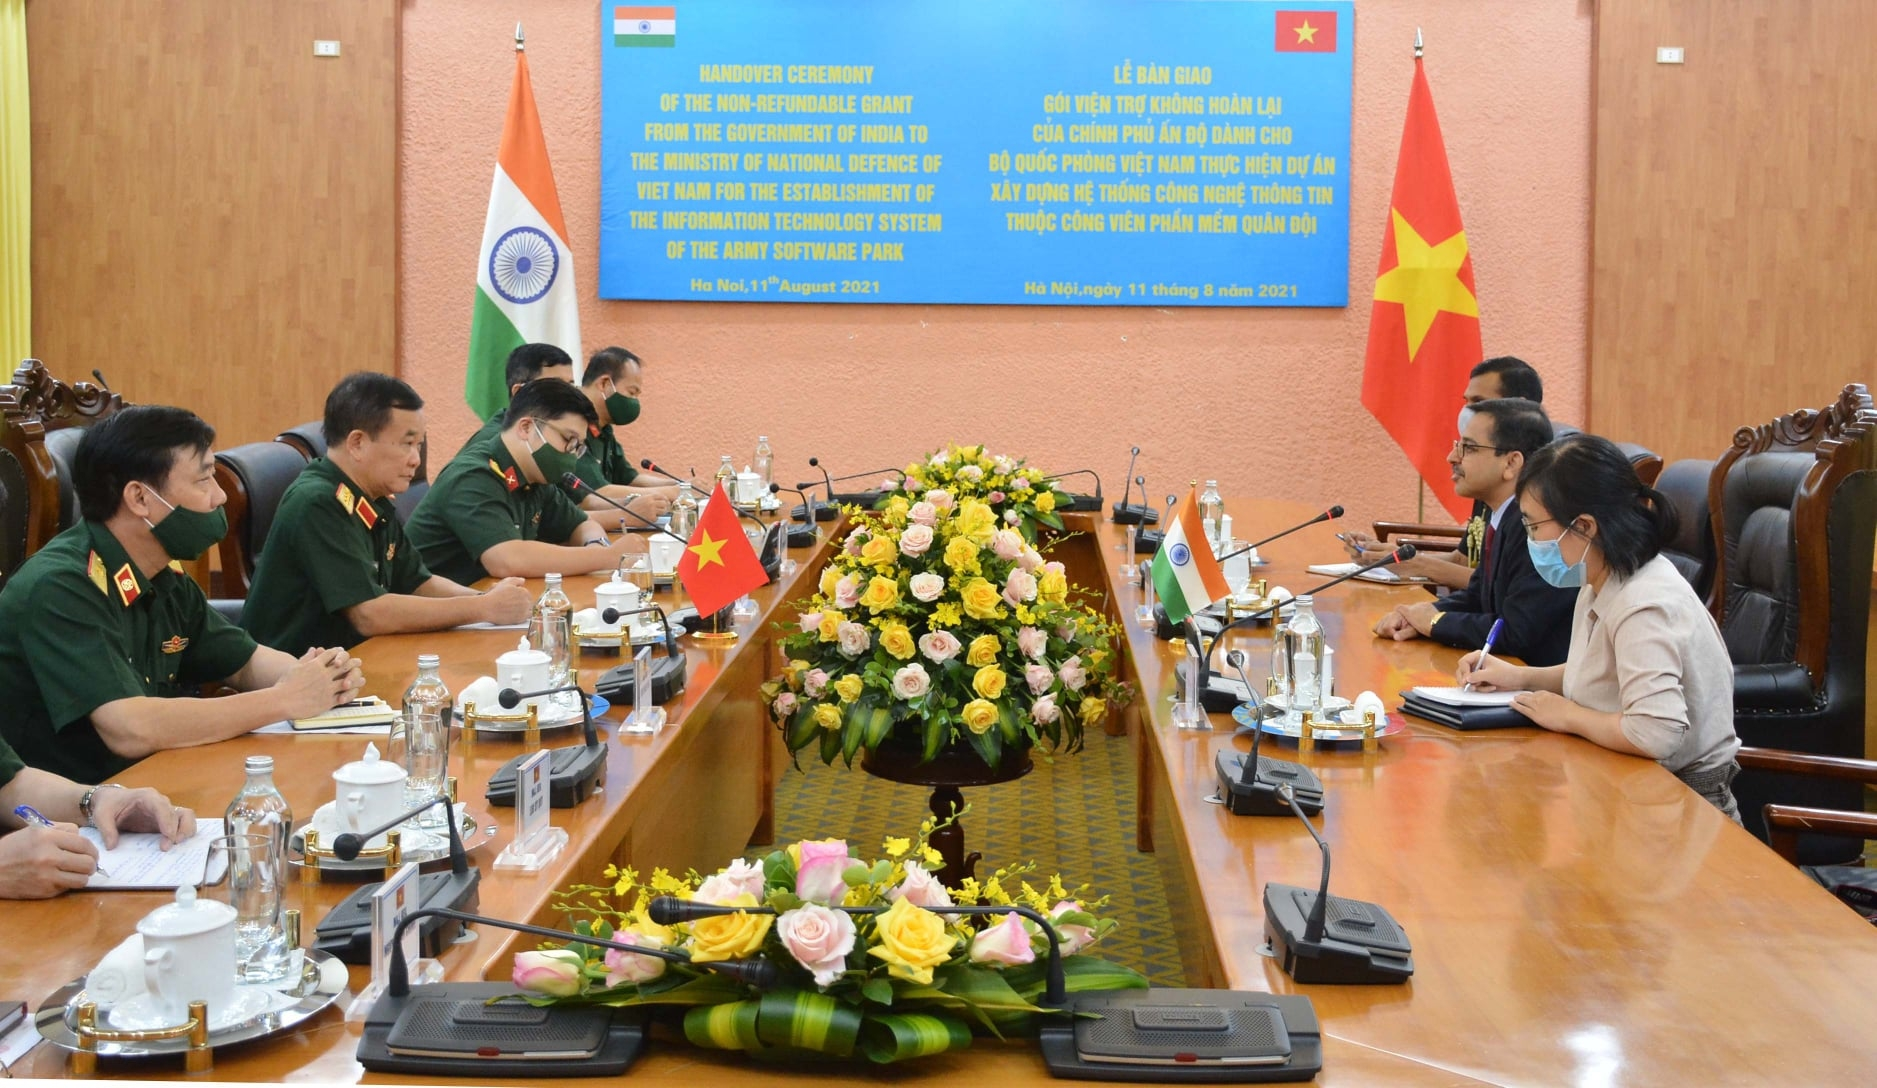 India supports Vietnamese defense ministry with USD 1 million to build IT system